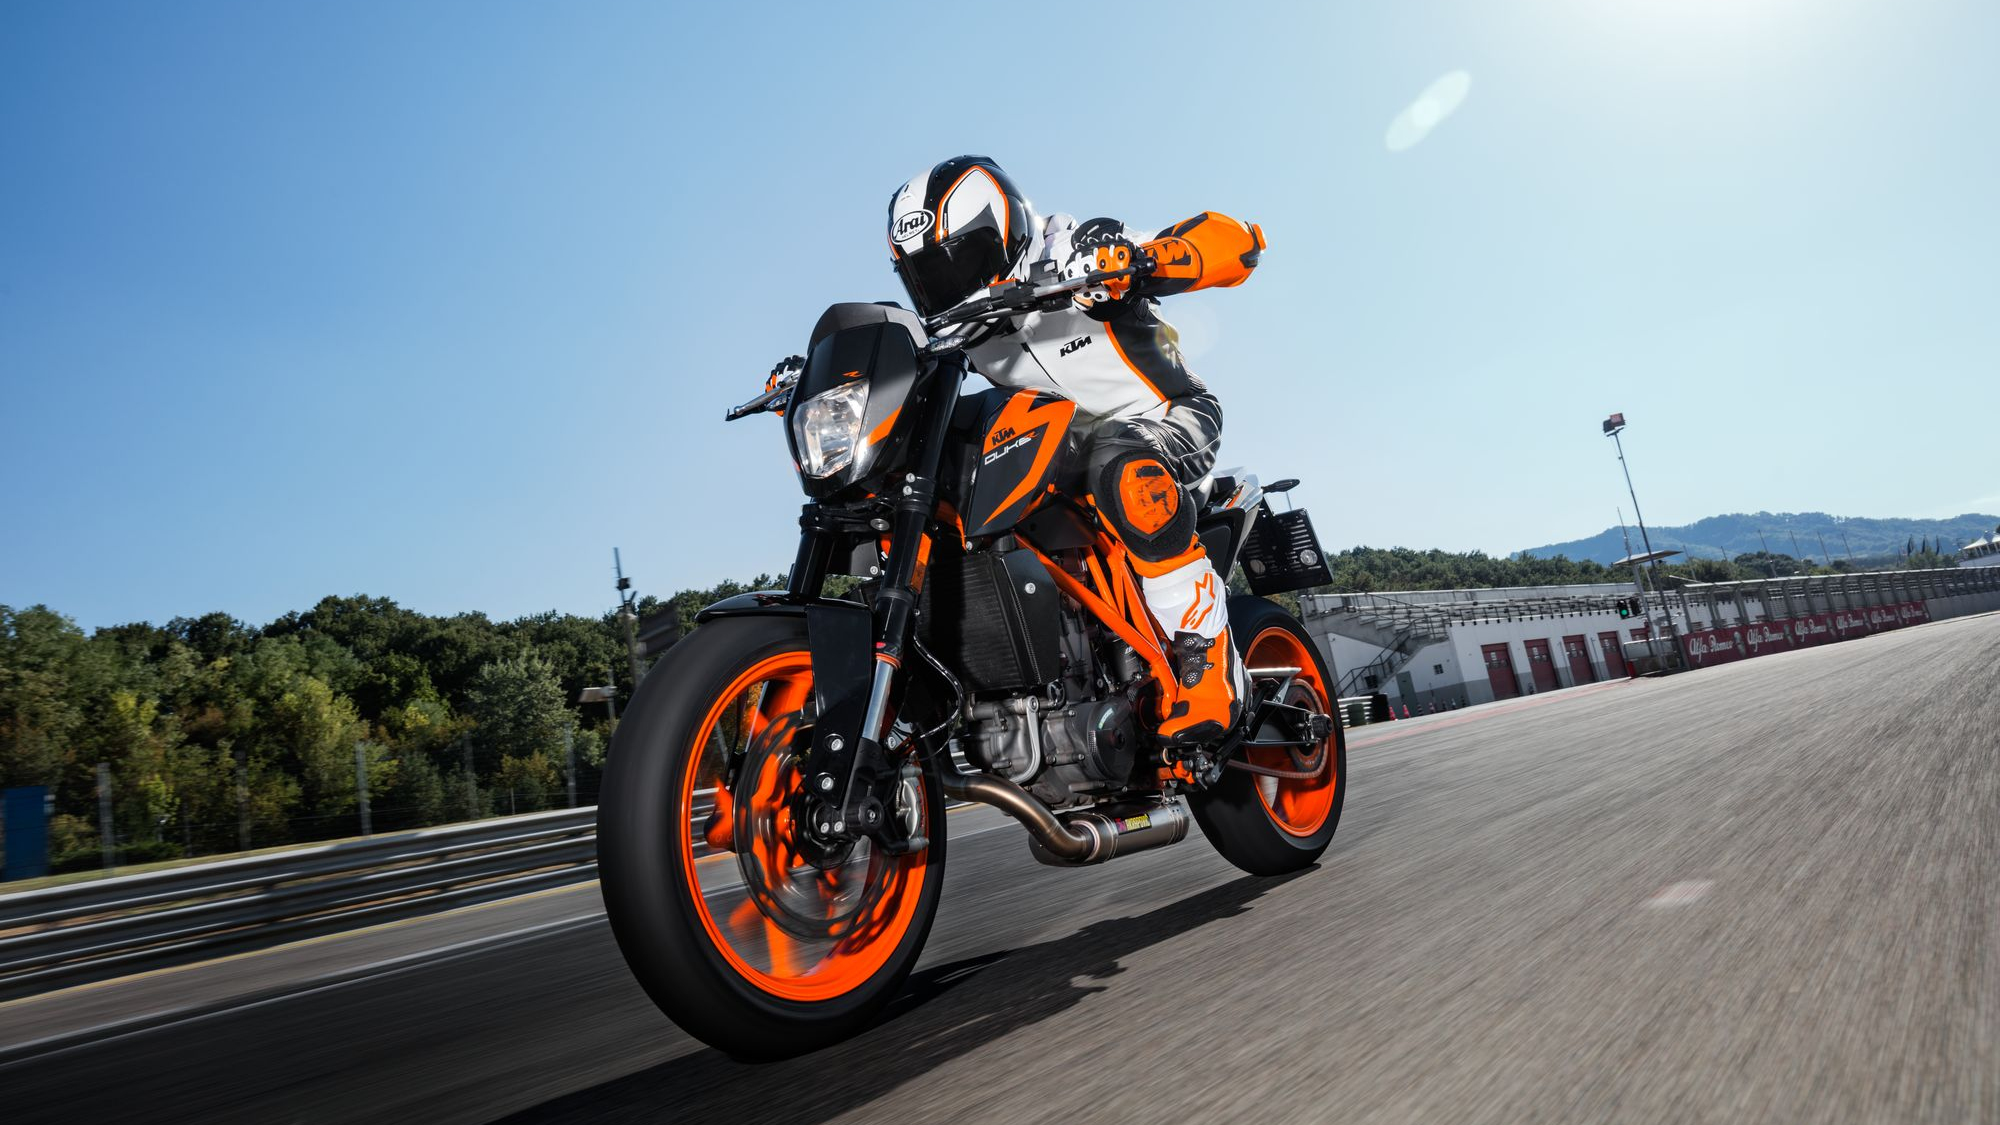 2015 2017 Ktm 690 Duke Abs Pictures Photos Wallpapers Top Speed